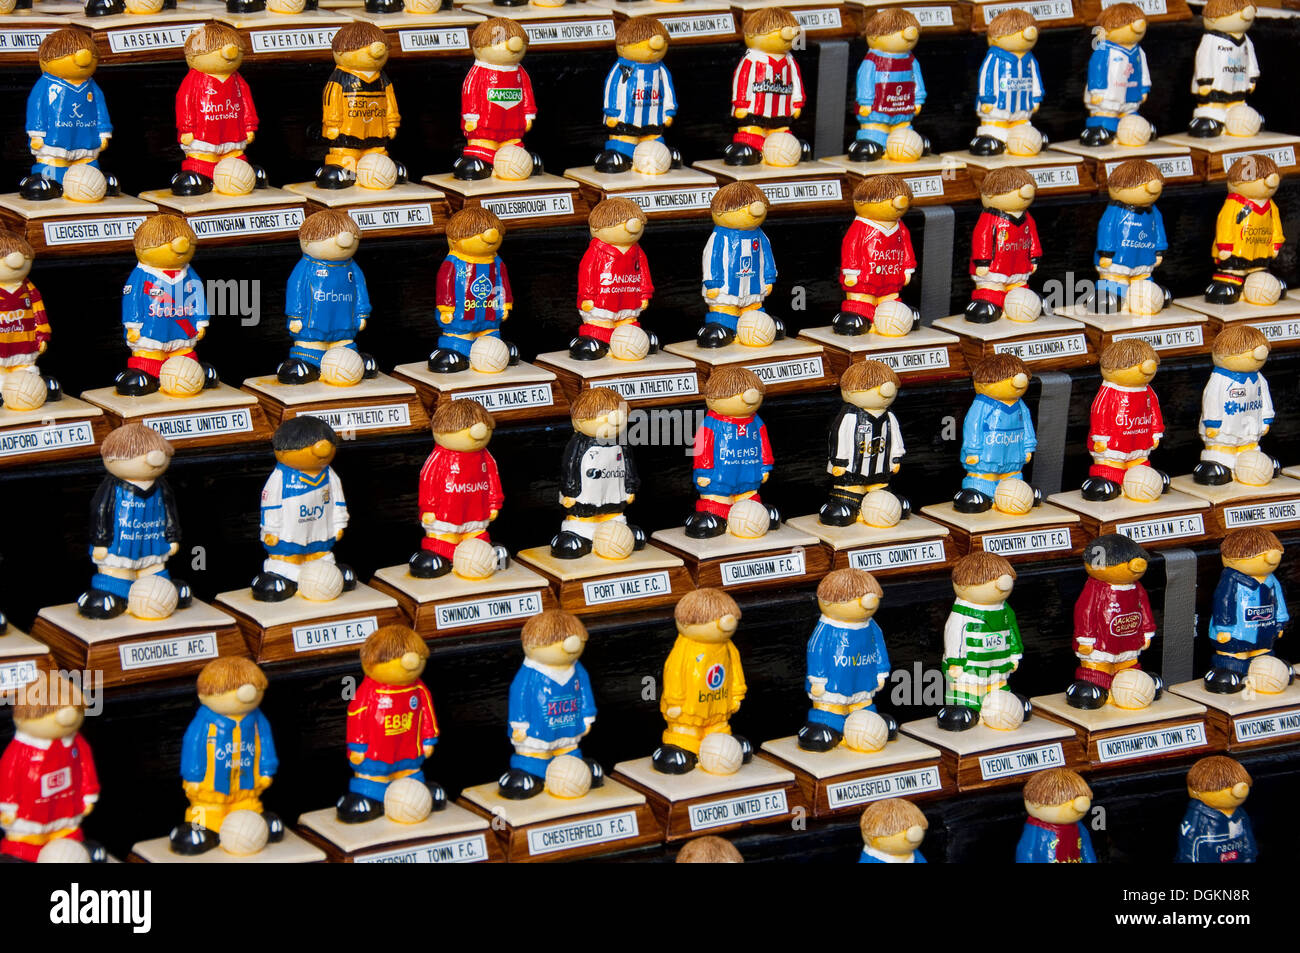 Painted models of football players in team colours. - Stock Image